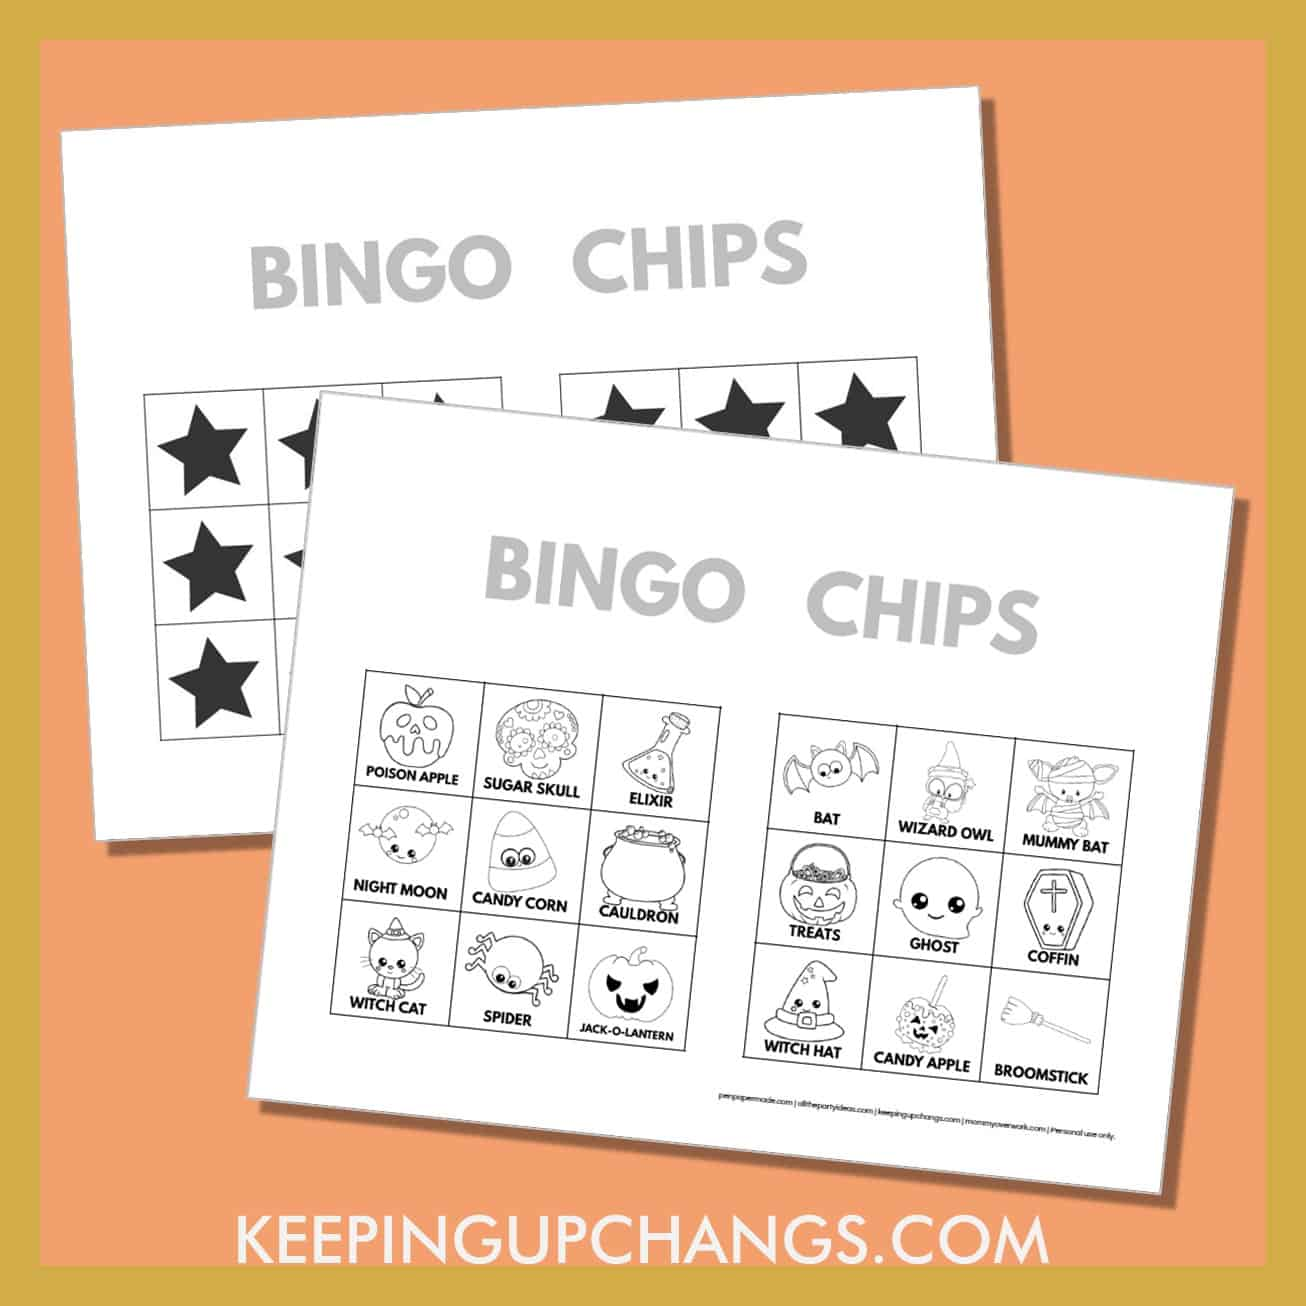 free fall halloween bingo card 3x3 black white coloring game chips, tokens, markers.